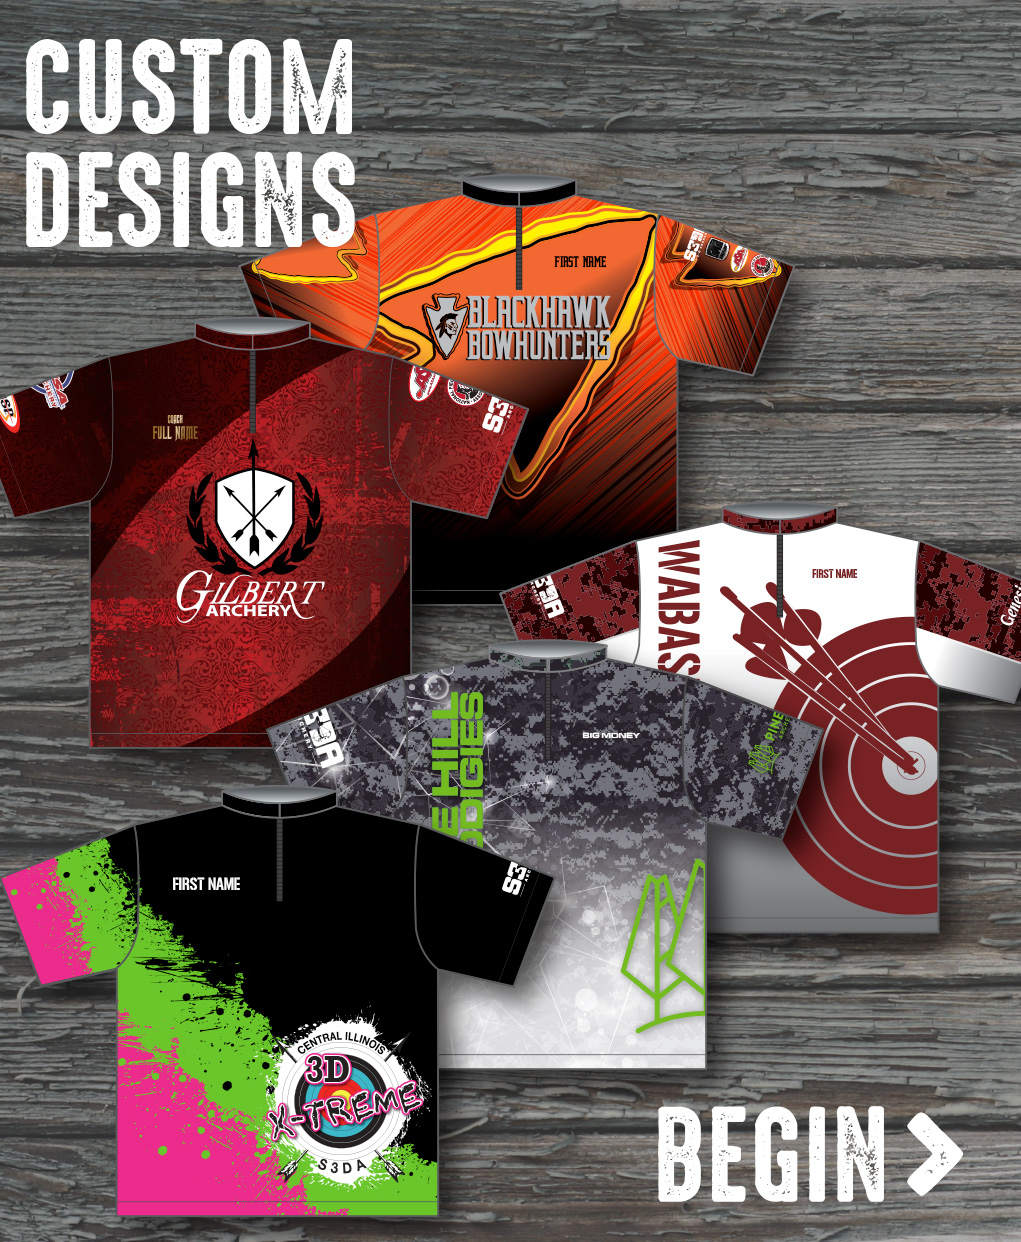 CUSTOM DESIGN METHOD: Request a completely custom design. We can bring your concept to life! Just describe what you're looking for and we'll quote you a setup fee based on the level of detail and time involved.  Begin